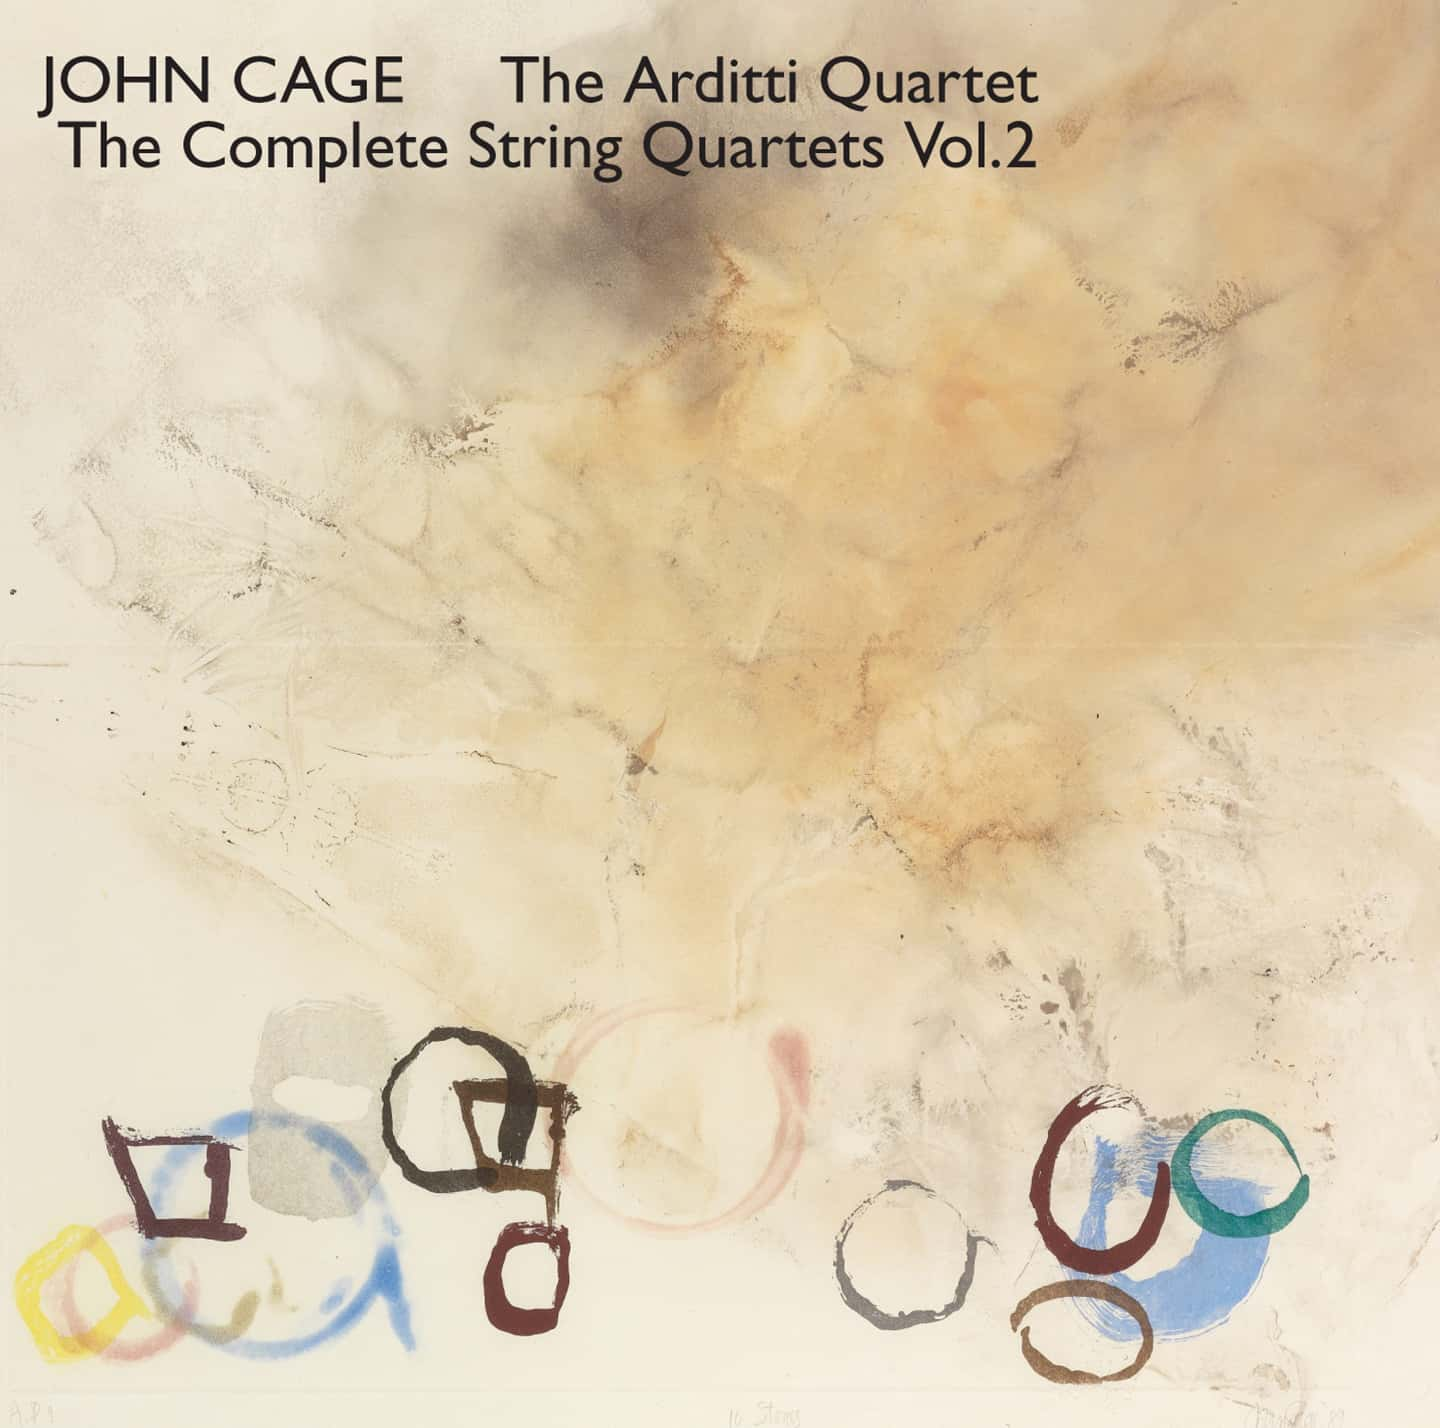 Cage Edition 5-String Quartets, Volume 2